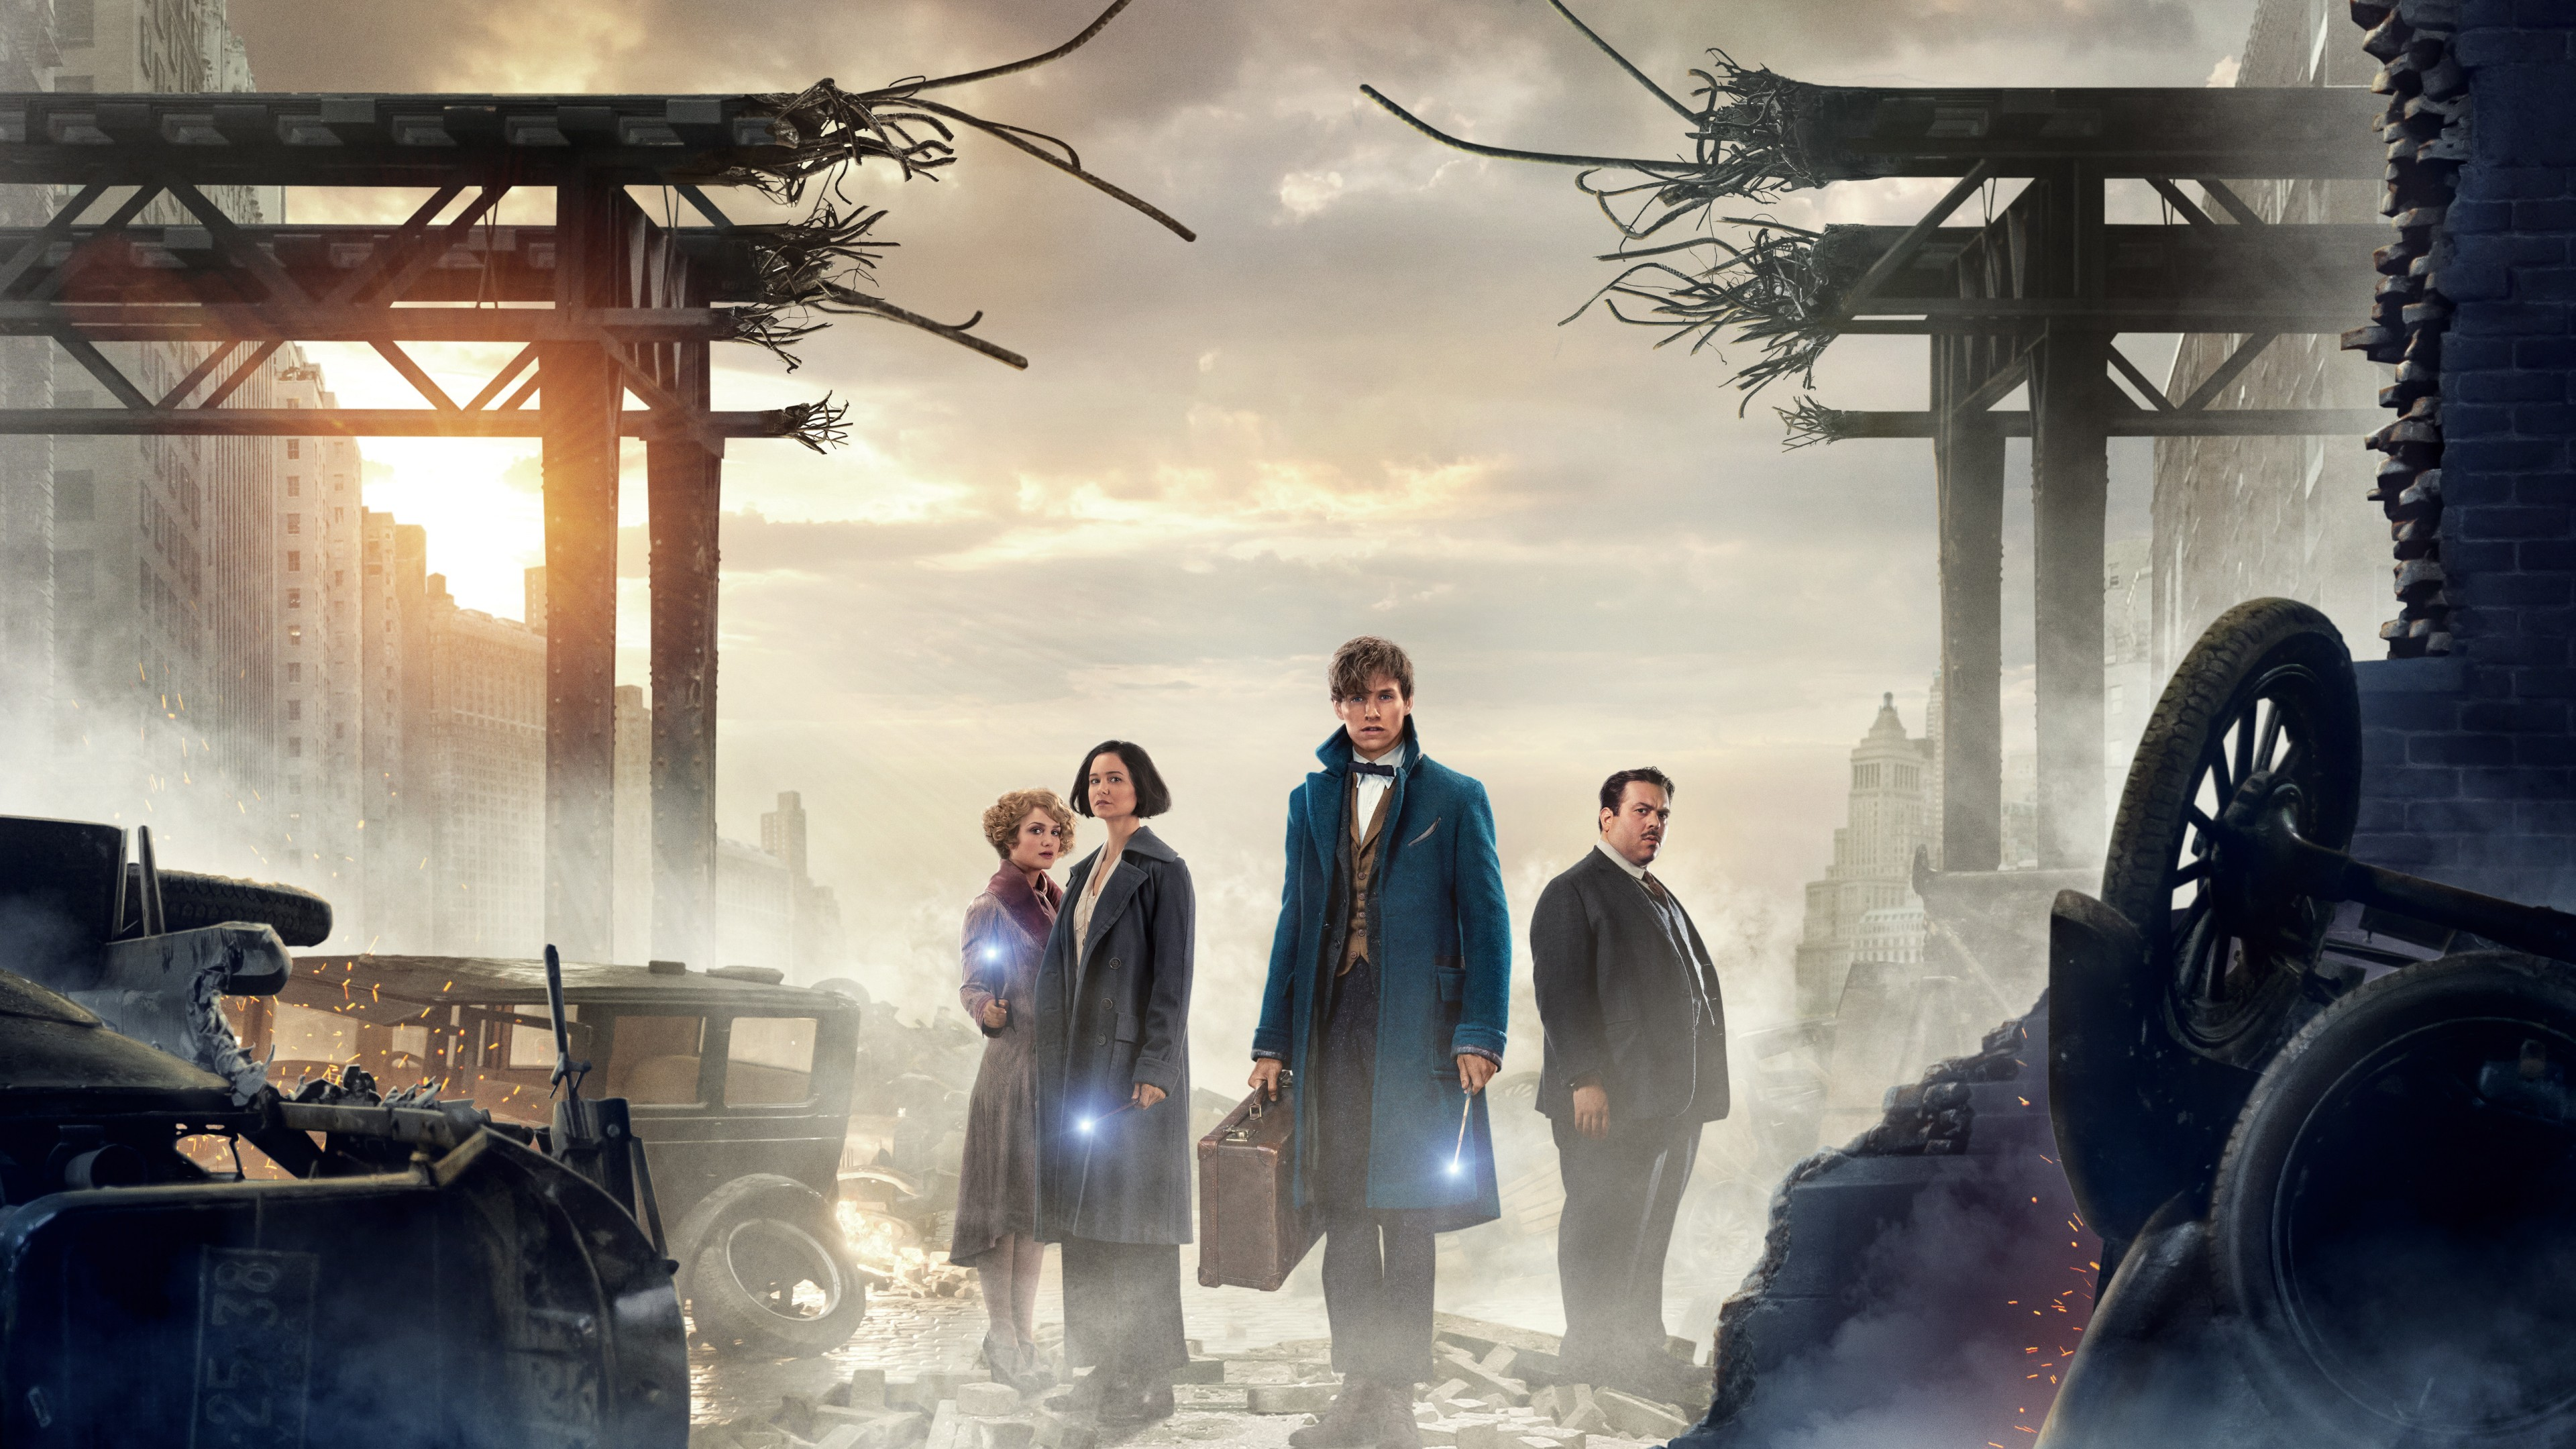 Fantastic Beasts And Where To Find Them 4k Hd Movies 4k